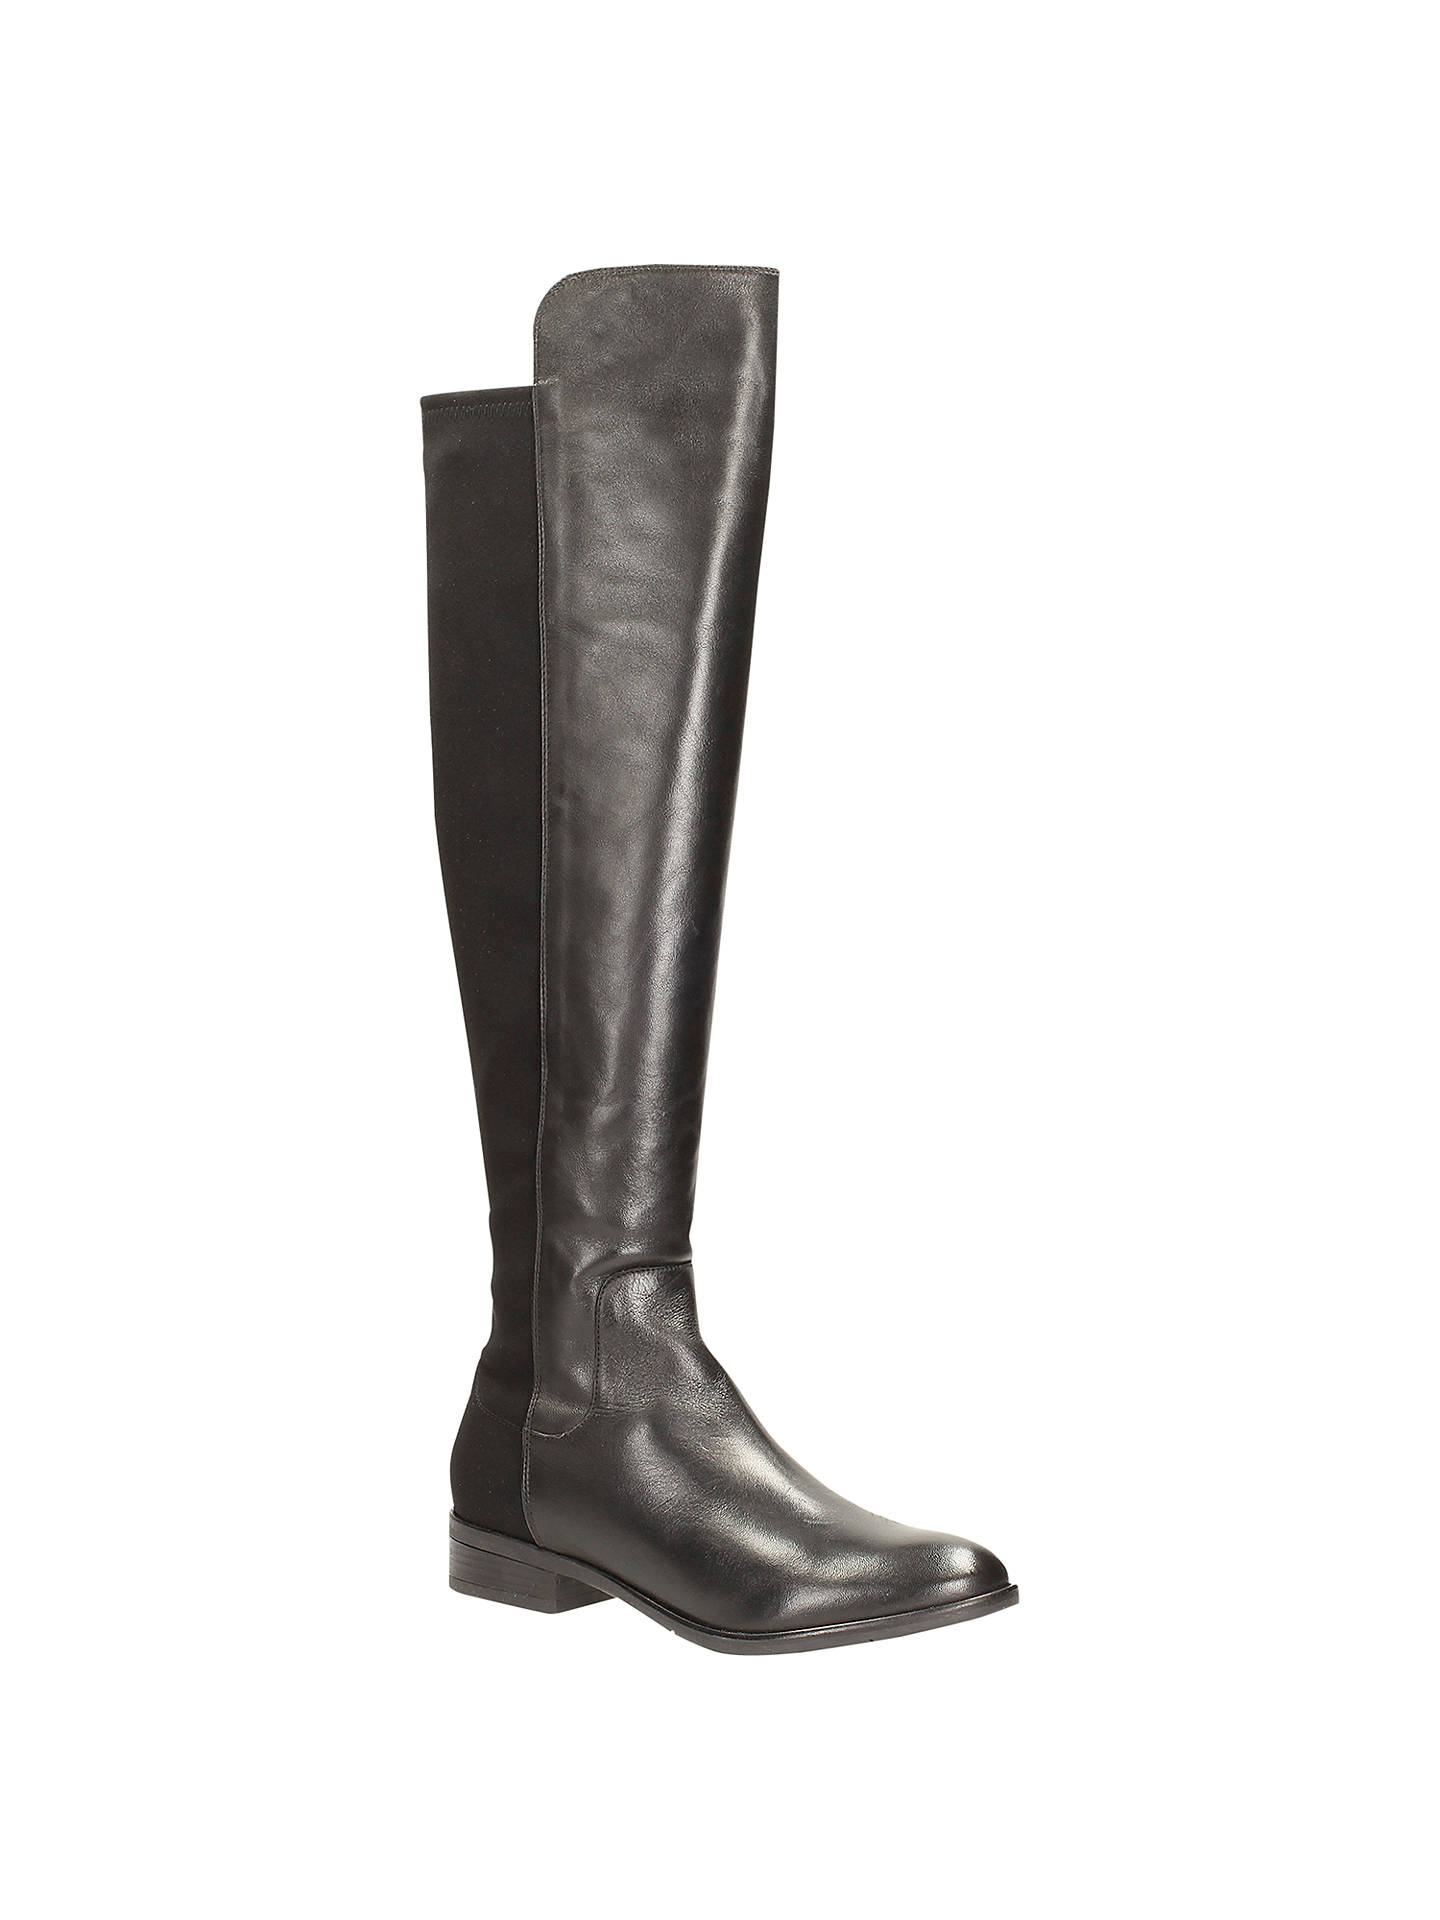 318bbd73017 Clarks Caddy Belle Over The Knee Leather Boots, Black at John Lewis ...